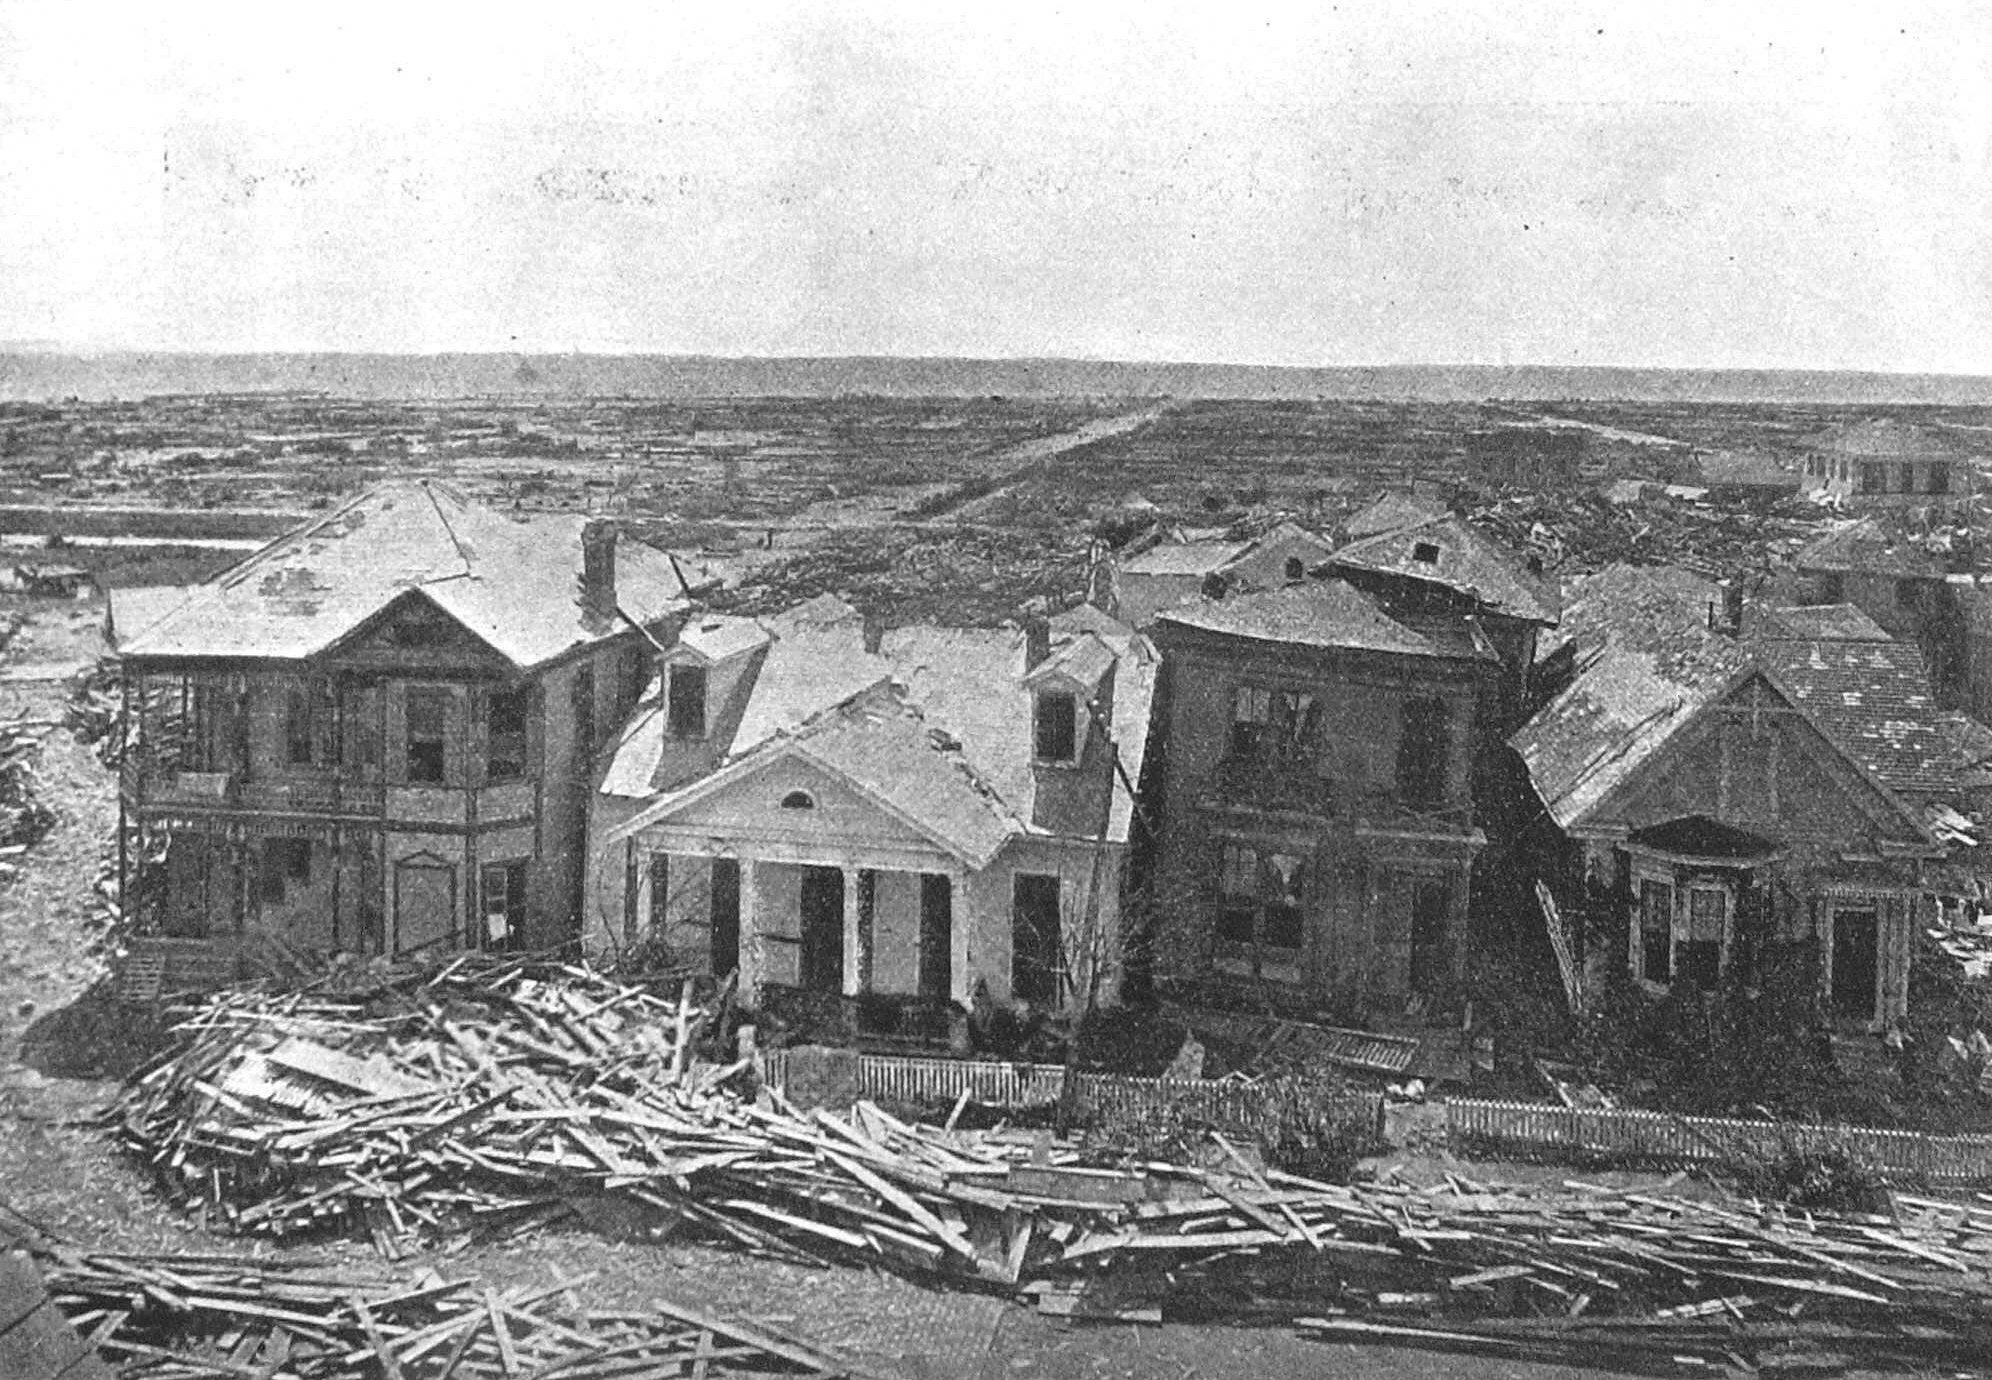 Looking Back At The 1900 Hurricane That Wiped Out Galveston And Made It Stronger In The Long Run Galveston Hurricane 1900 Galveston Hurricane Galveston